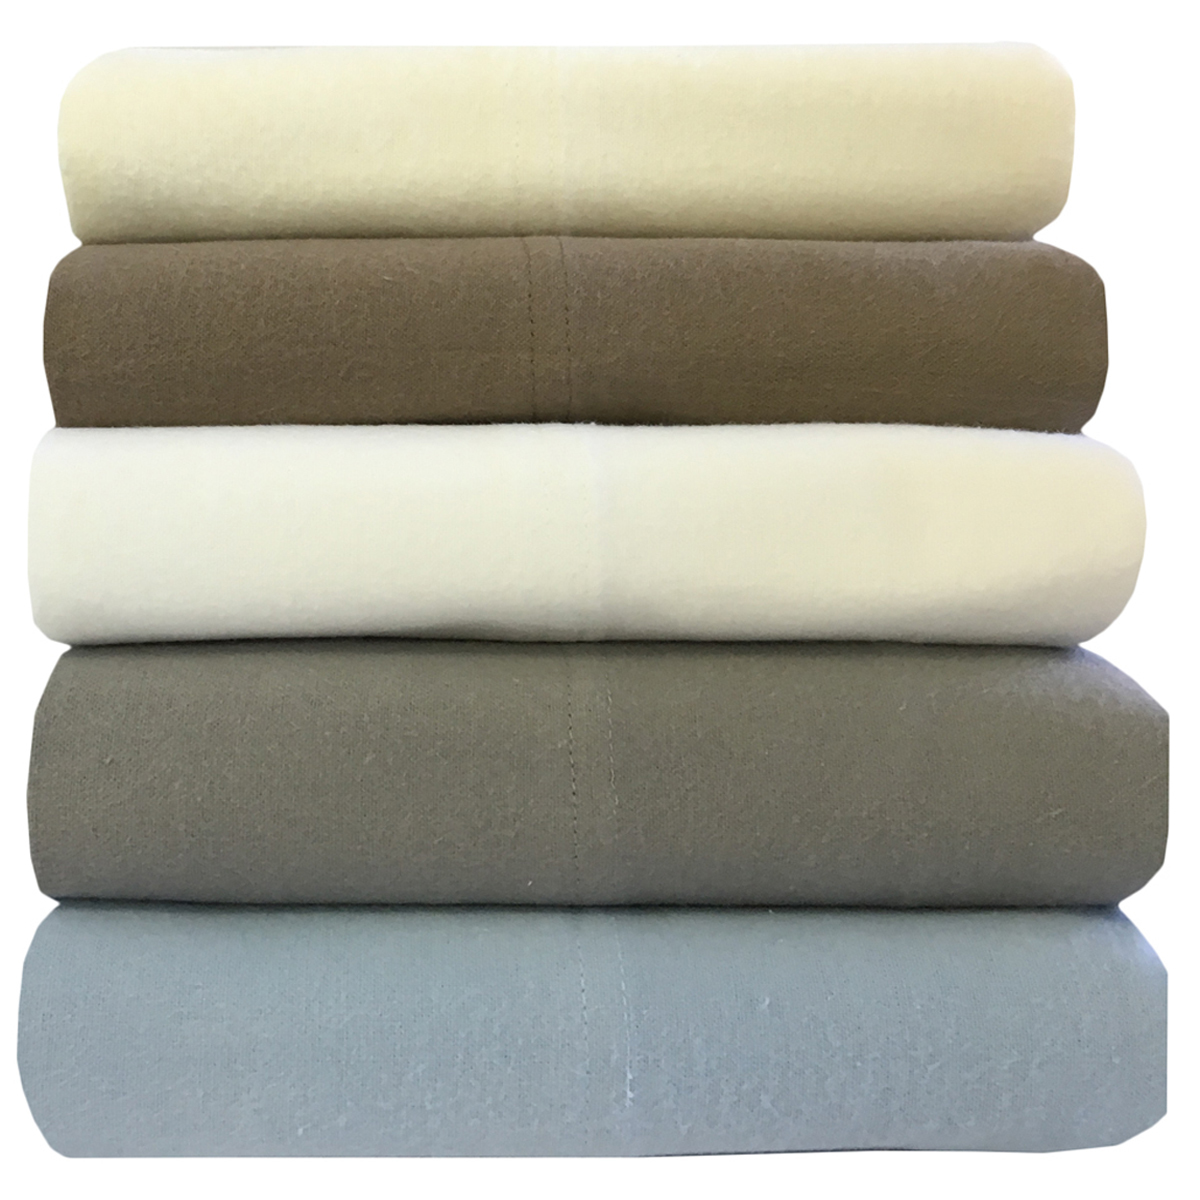 Heavyweight 170GSM Warm Winter Flannel Sheet Sets